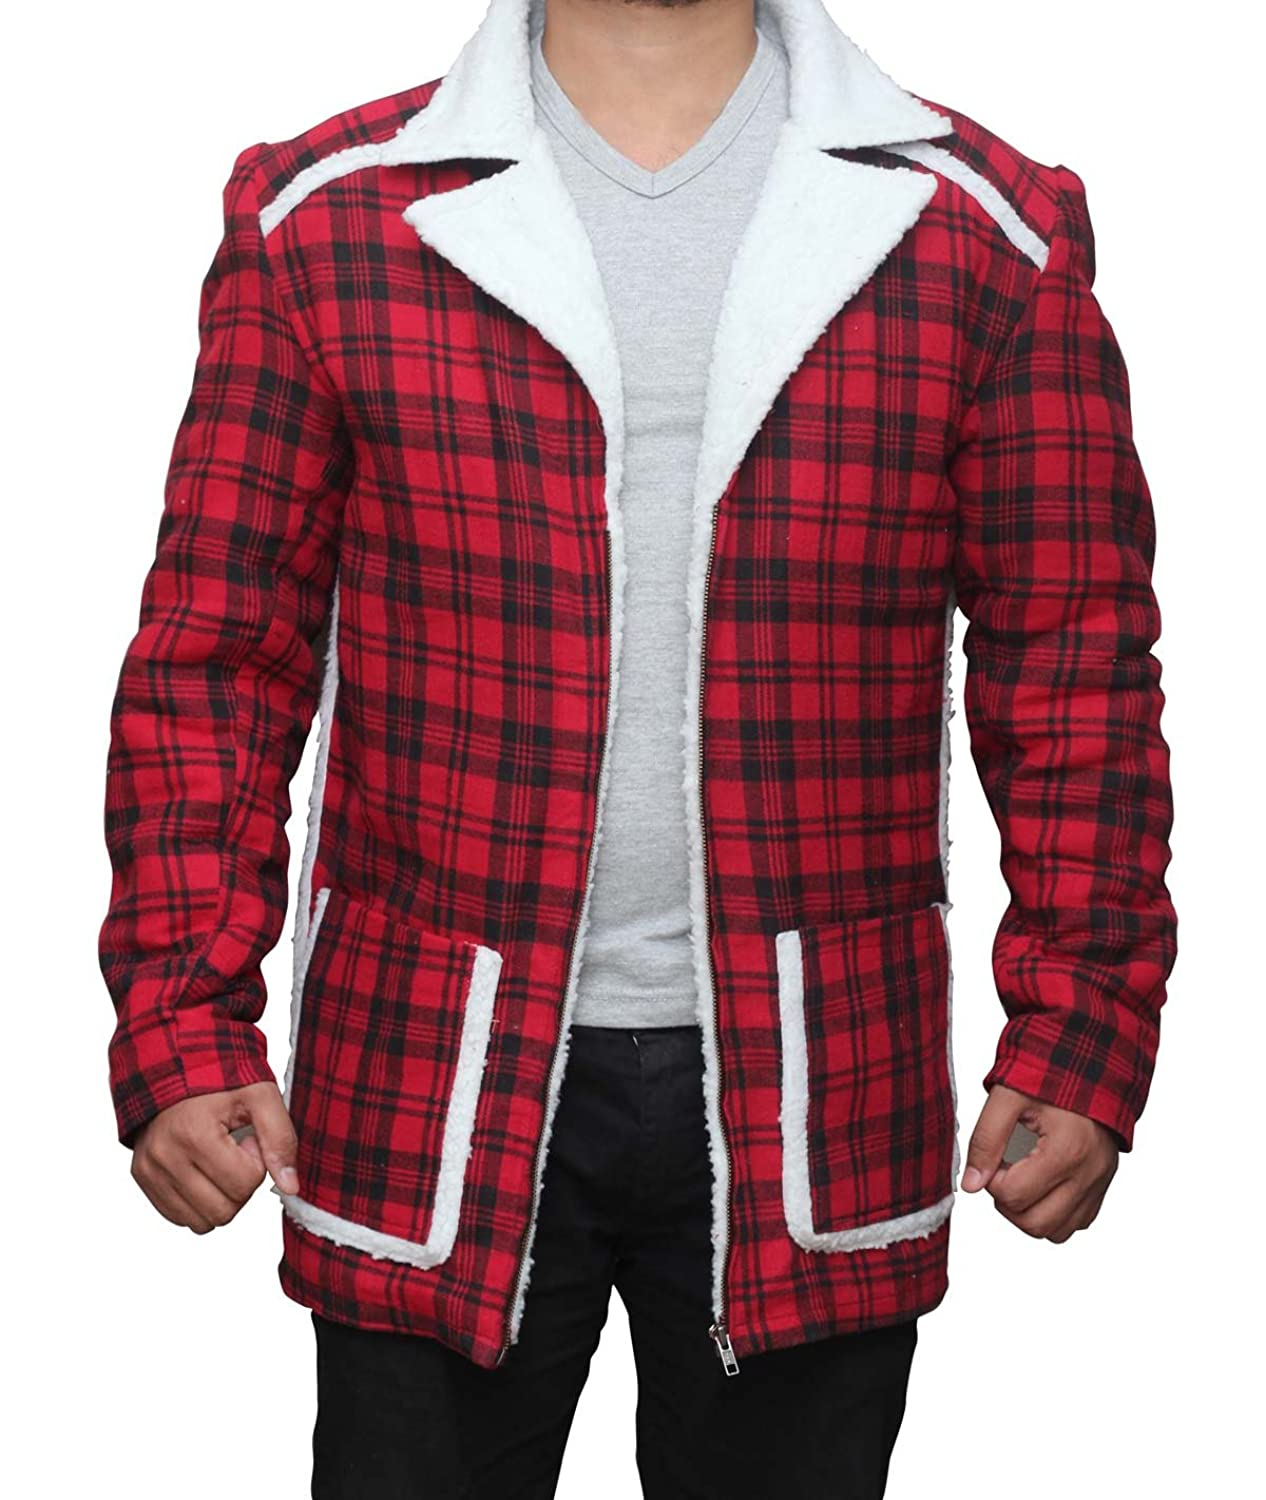 Deadpool Ryan Reynolds Red cotton flannel Shearling Jacket at